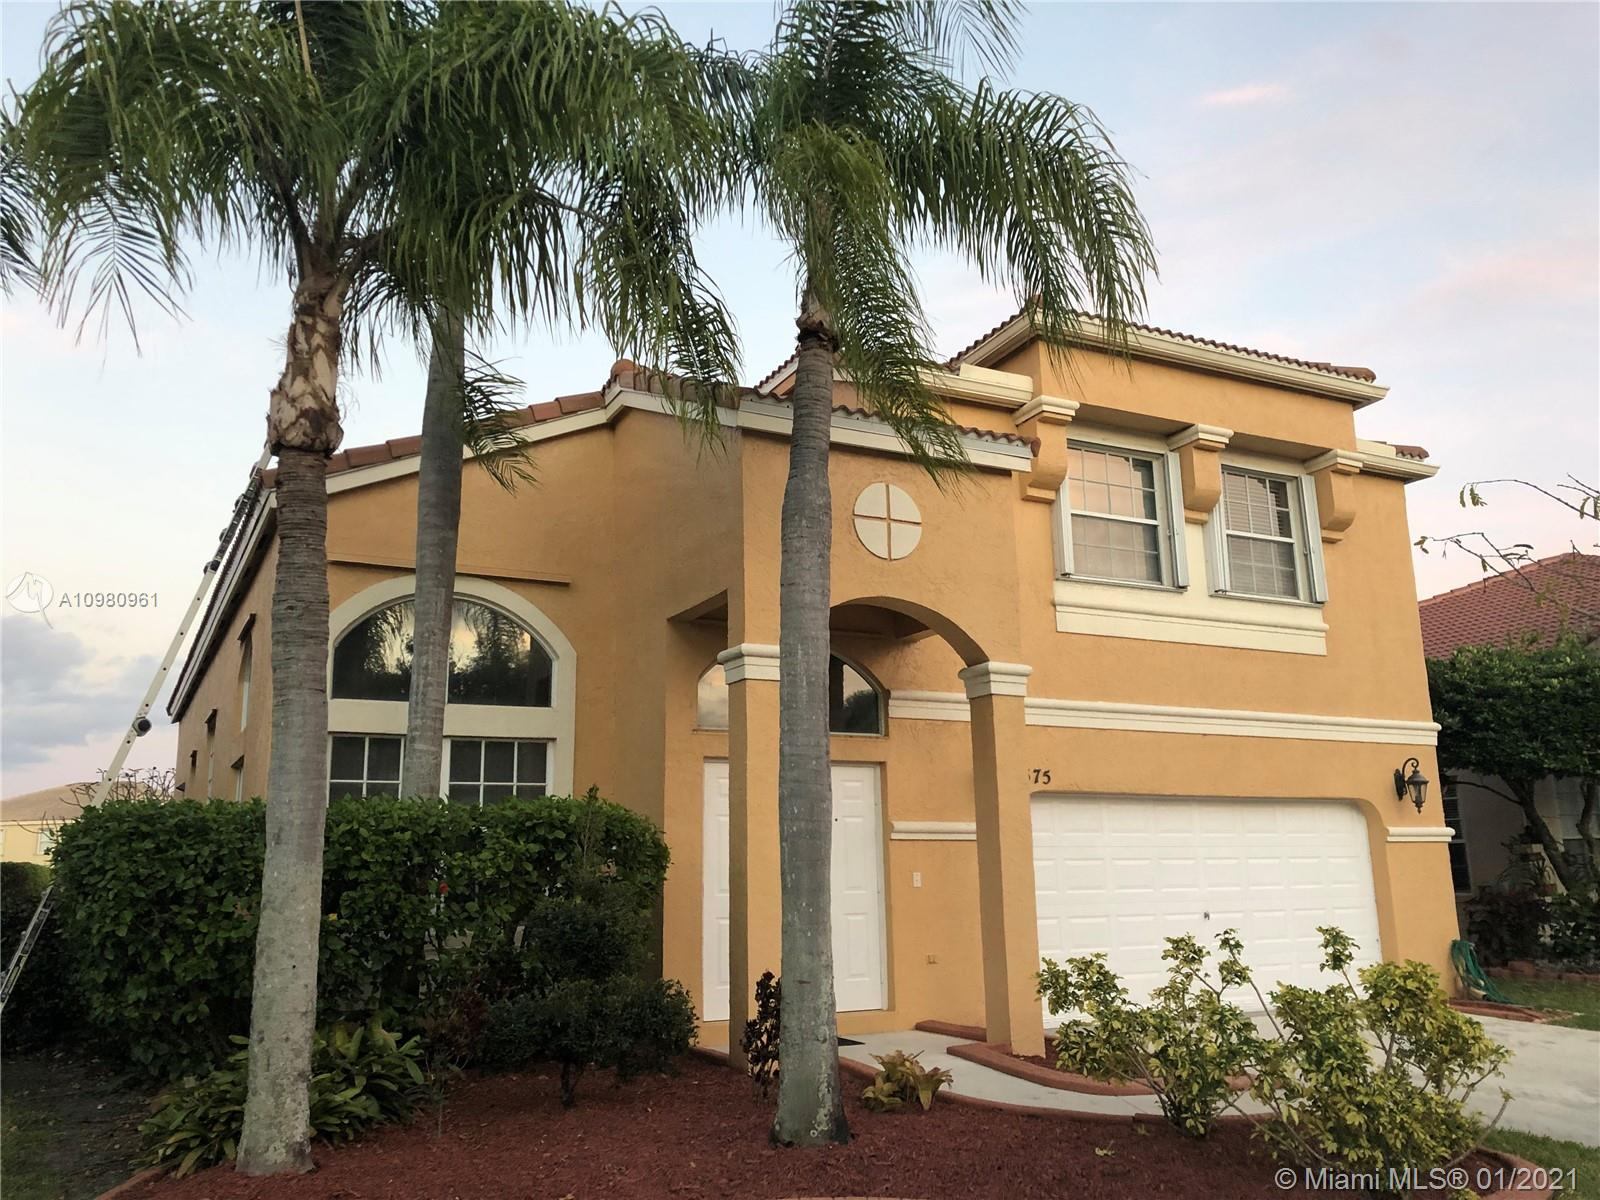 Towngate - 1575 NW 159th Ave, Pembroke Pines, FL 33028